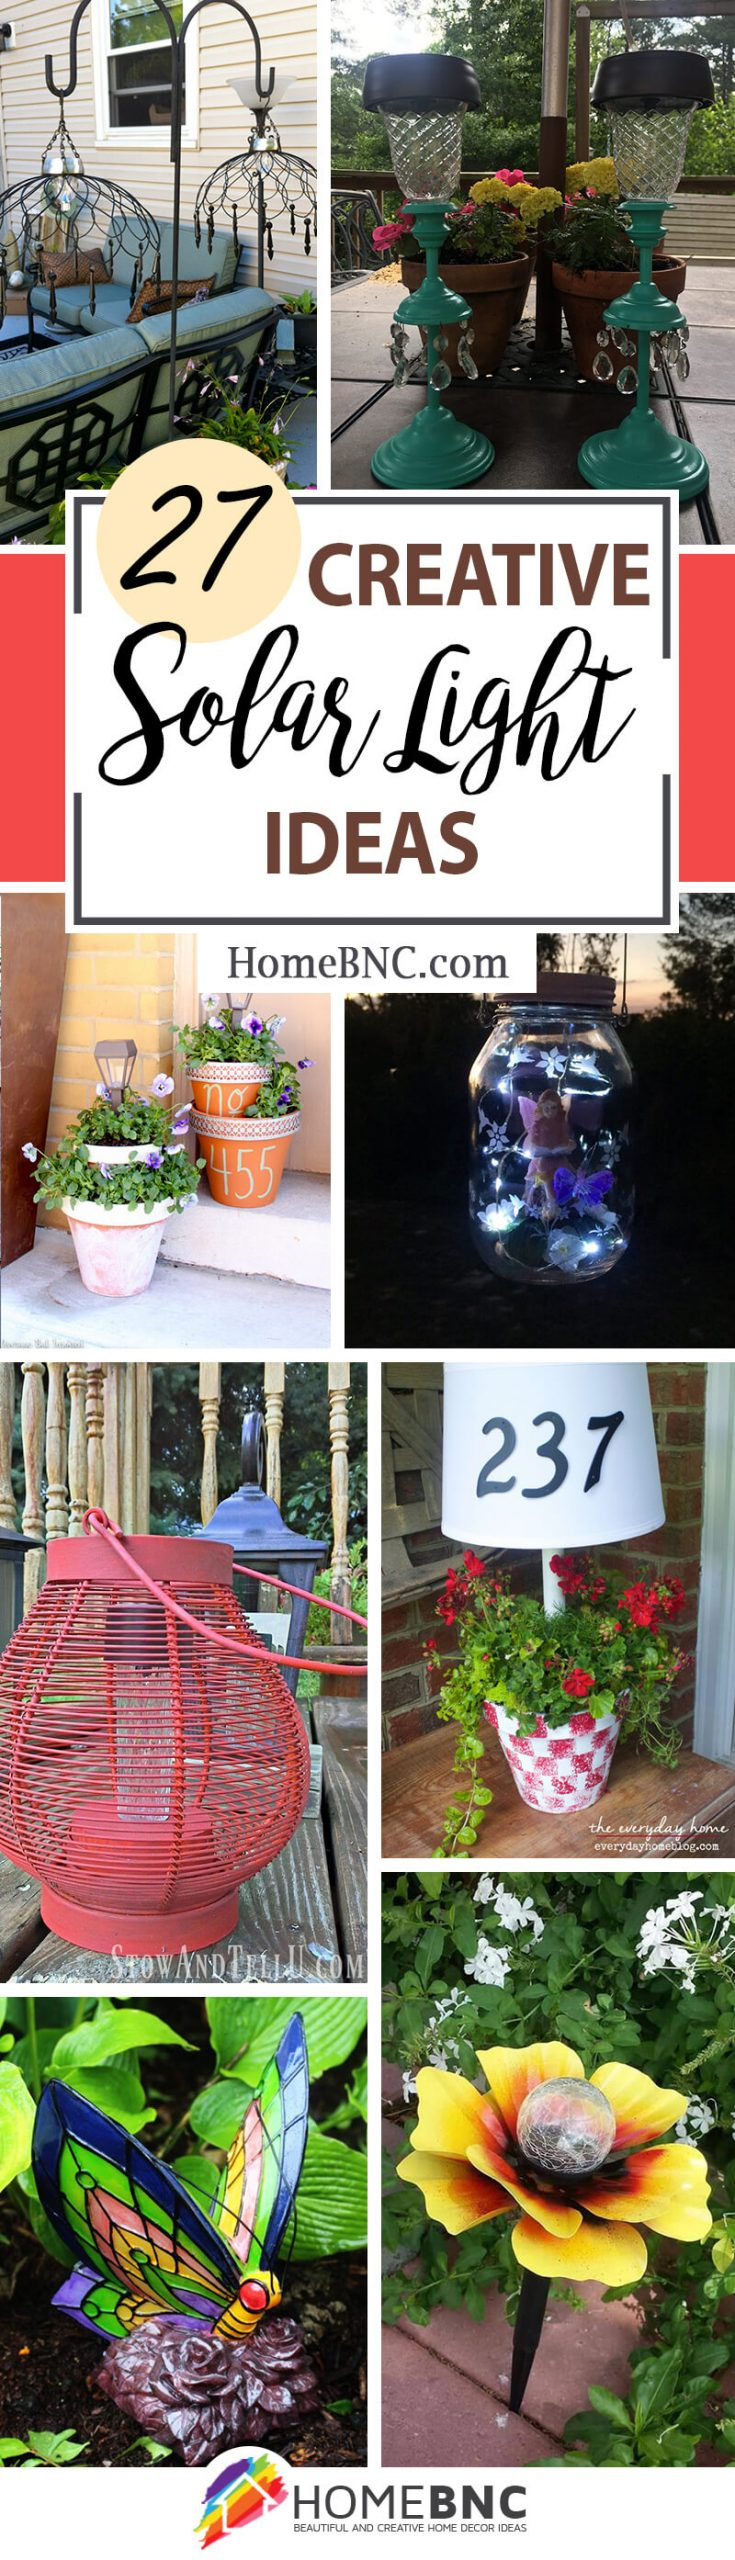 27 Best Creative Solar Light Ideas And Designs For 2021